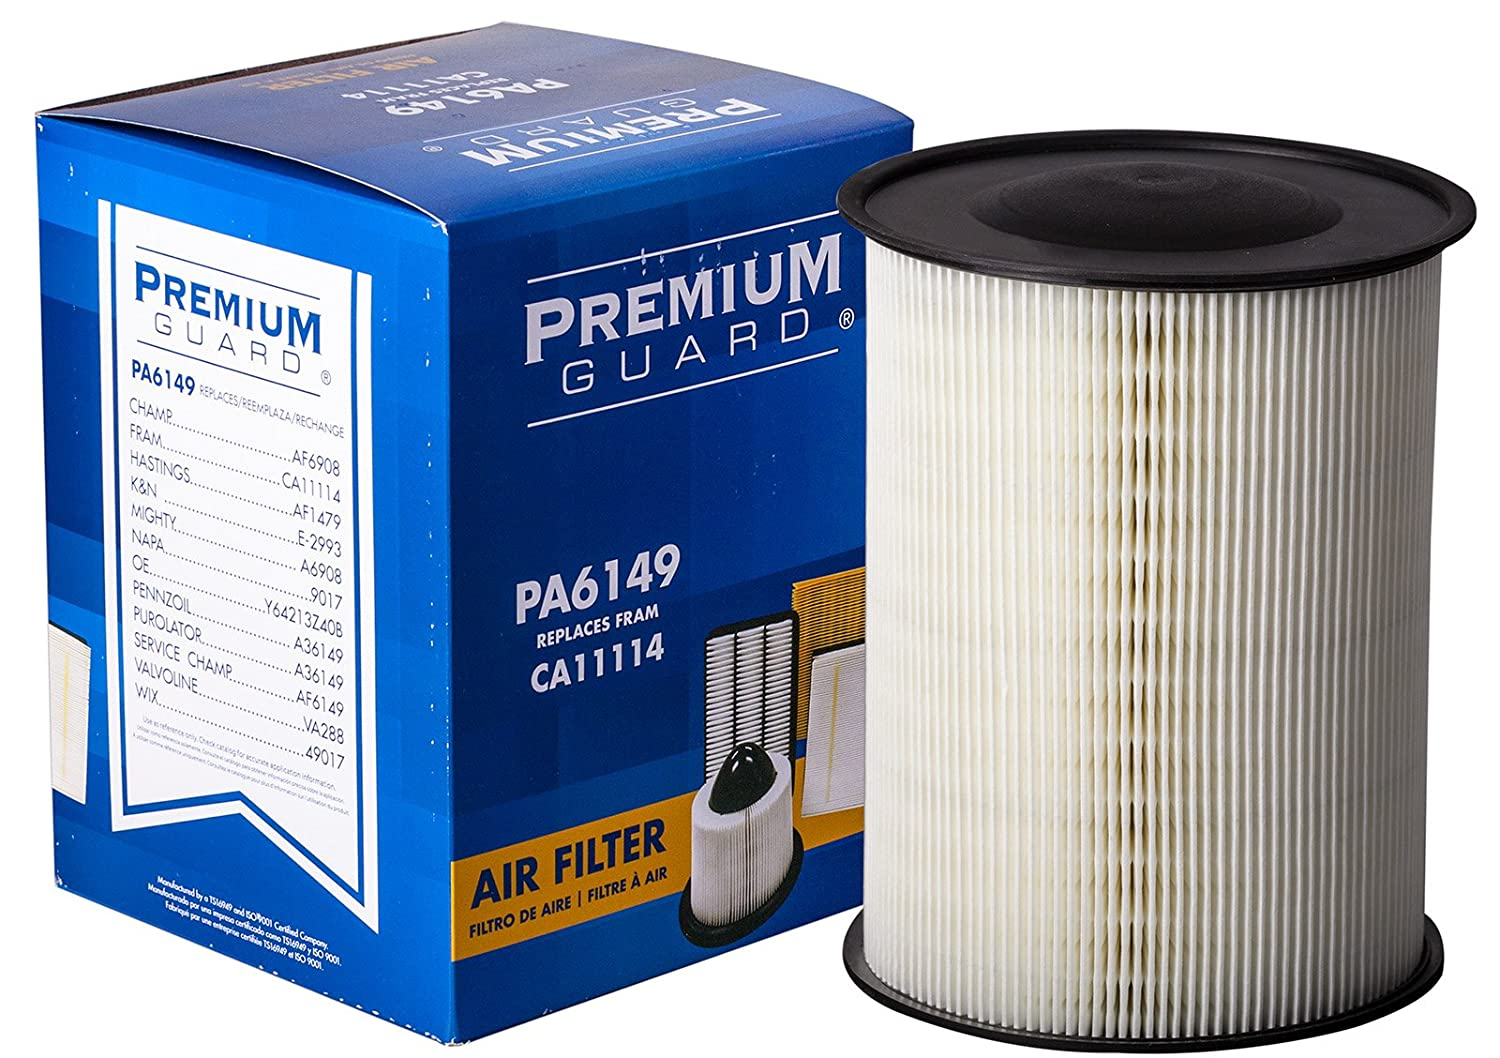 Premium Guard Air Filter Pa6149 Fits 2018 2013 Ford 7 3 Fuel Restriction Sensor Escape 2012 Focus 2016 2014 Transit Connect 2015 Lincoln Mkc